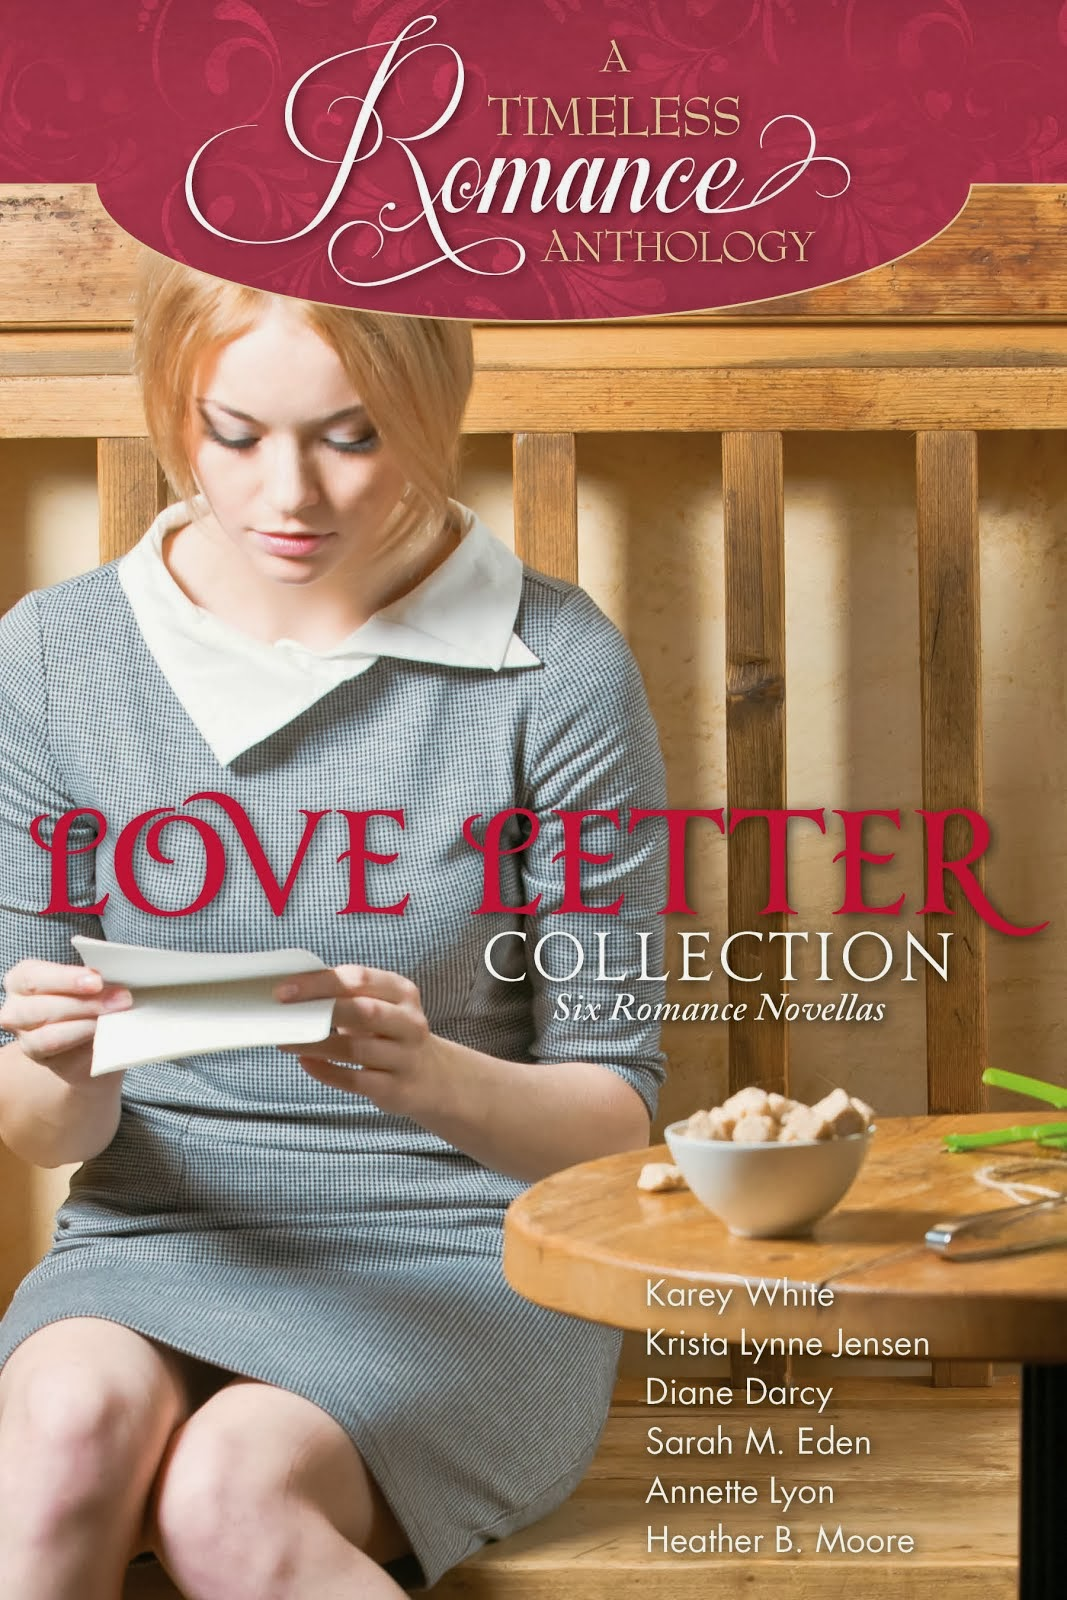 A Timeless Romance Anthology: Love Letter Collection